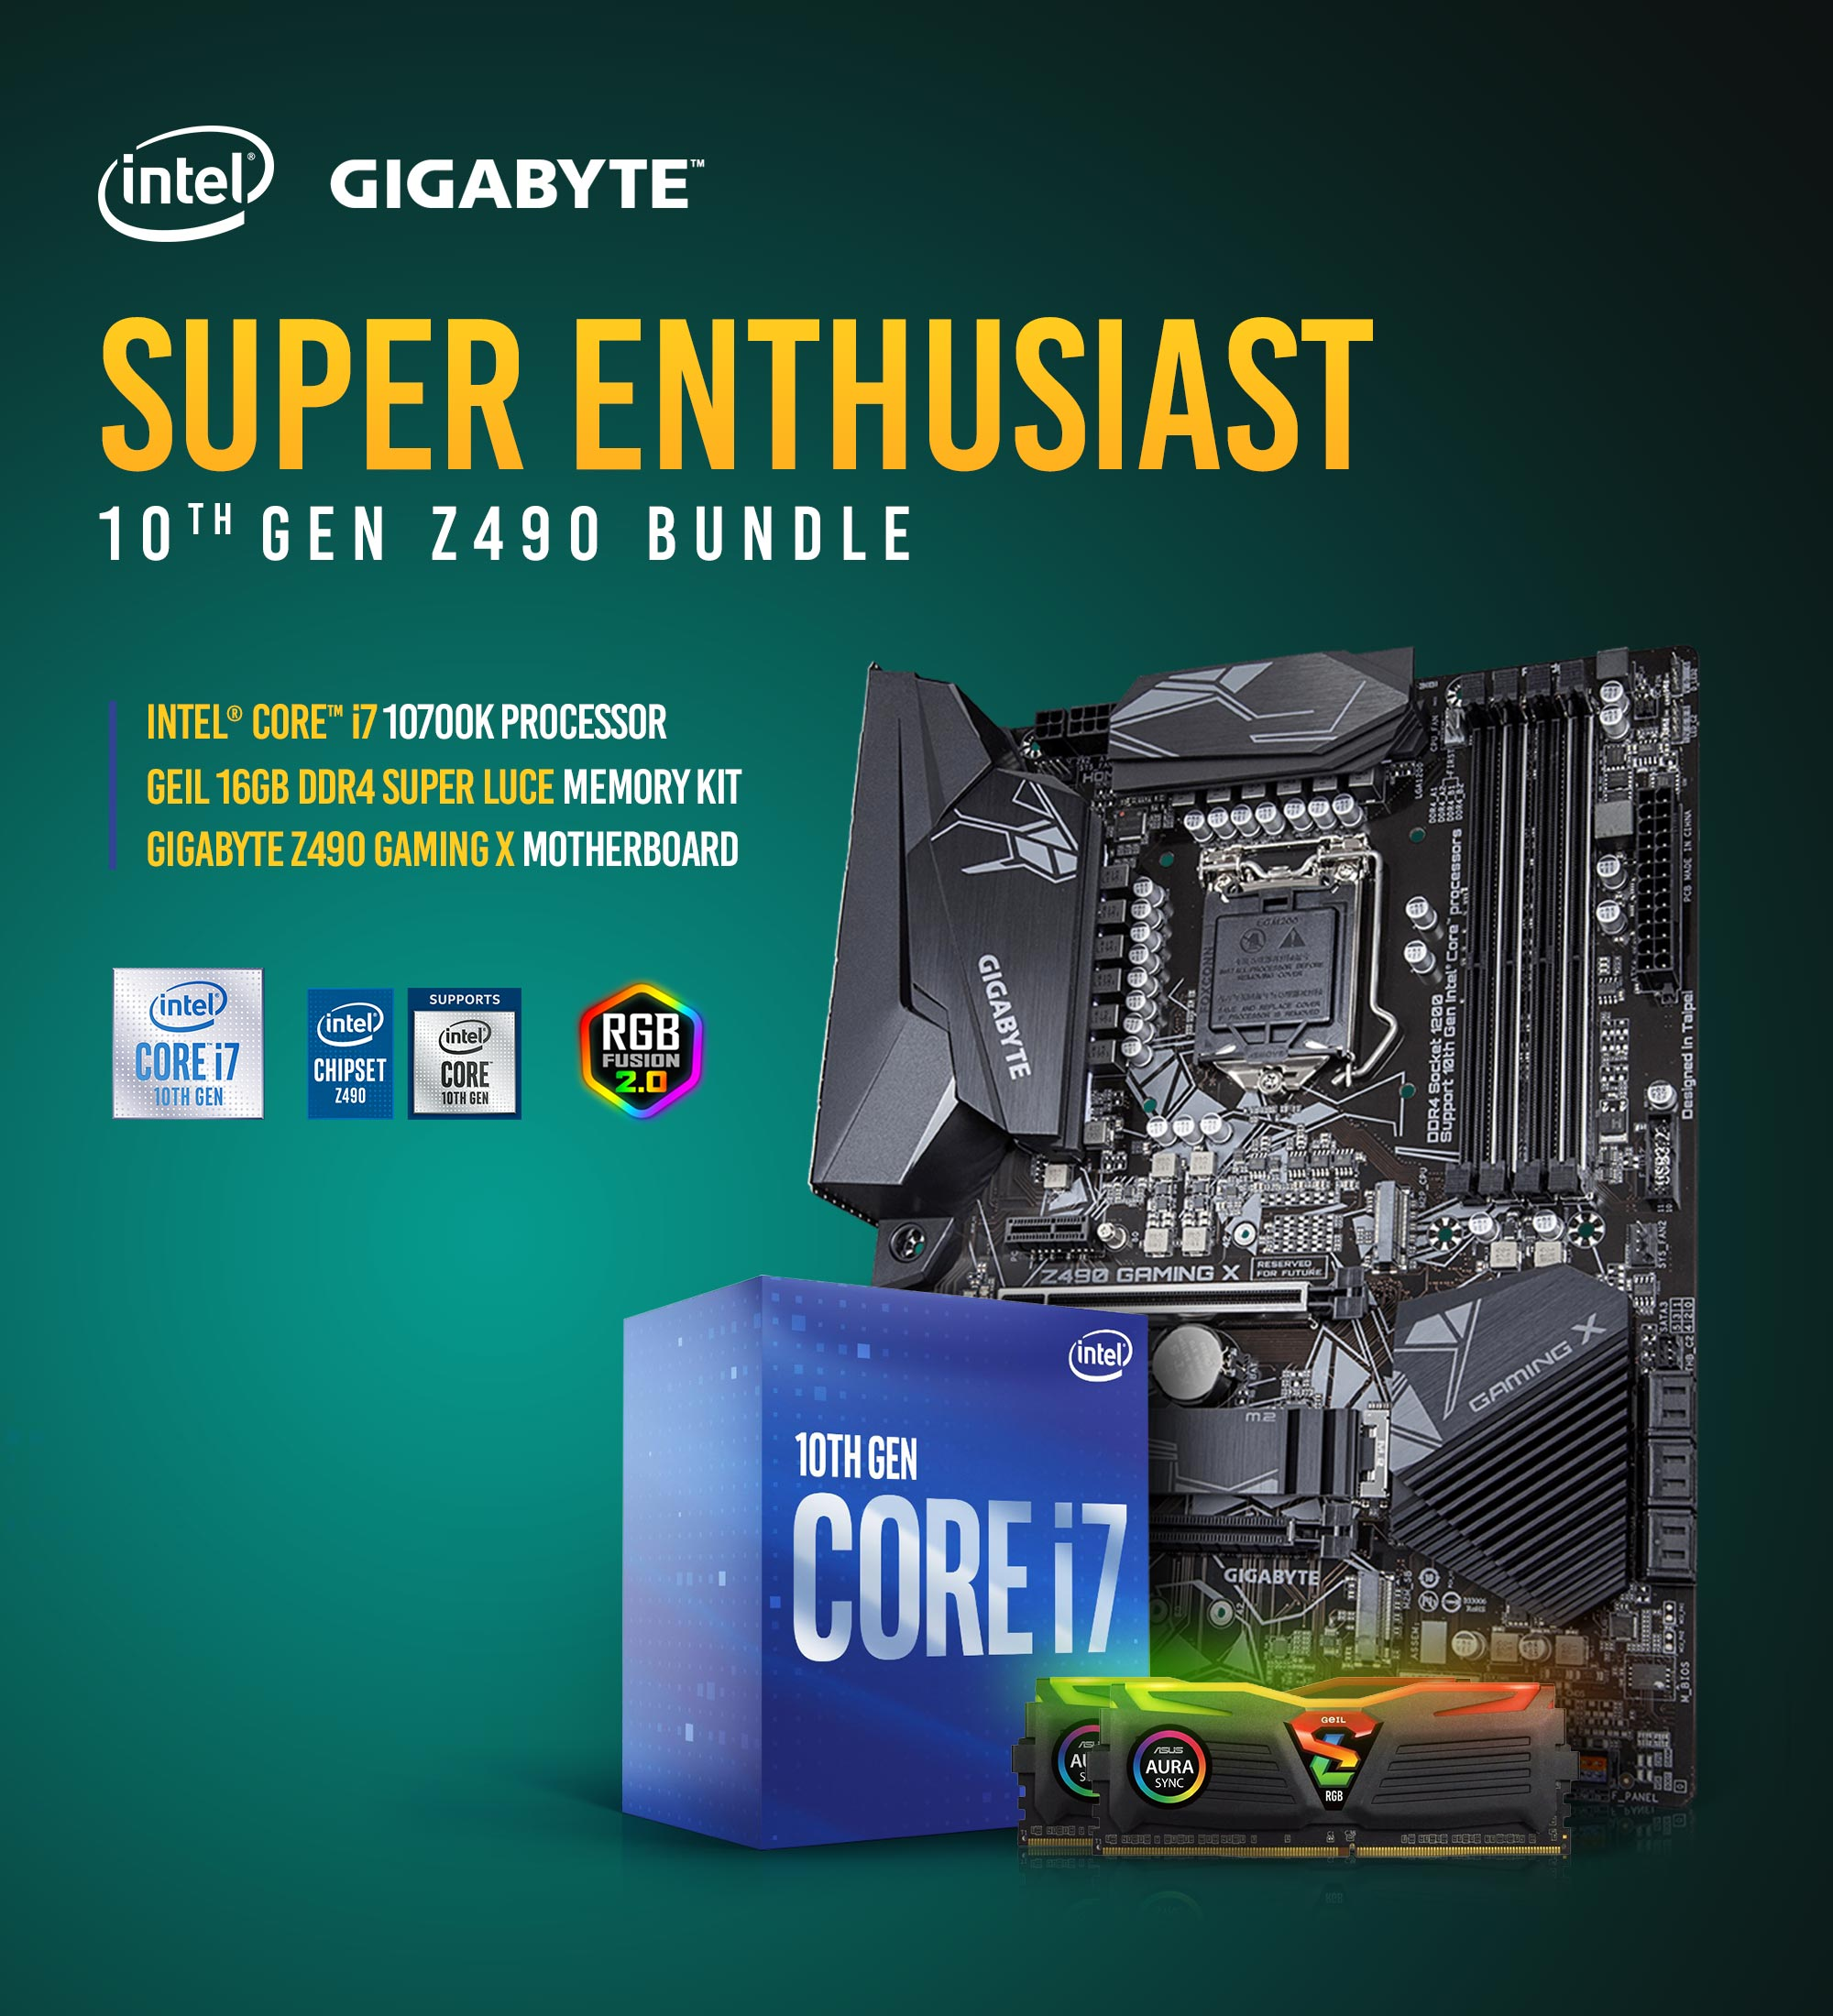 A large marketing image providing additional information about the product Intel 10th Gen Z490 Super Enthusiast Bundle - Additional alt info not provided